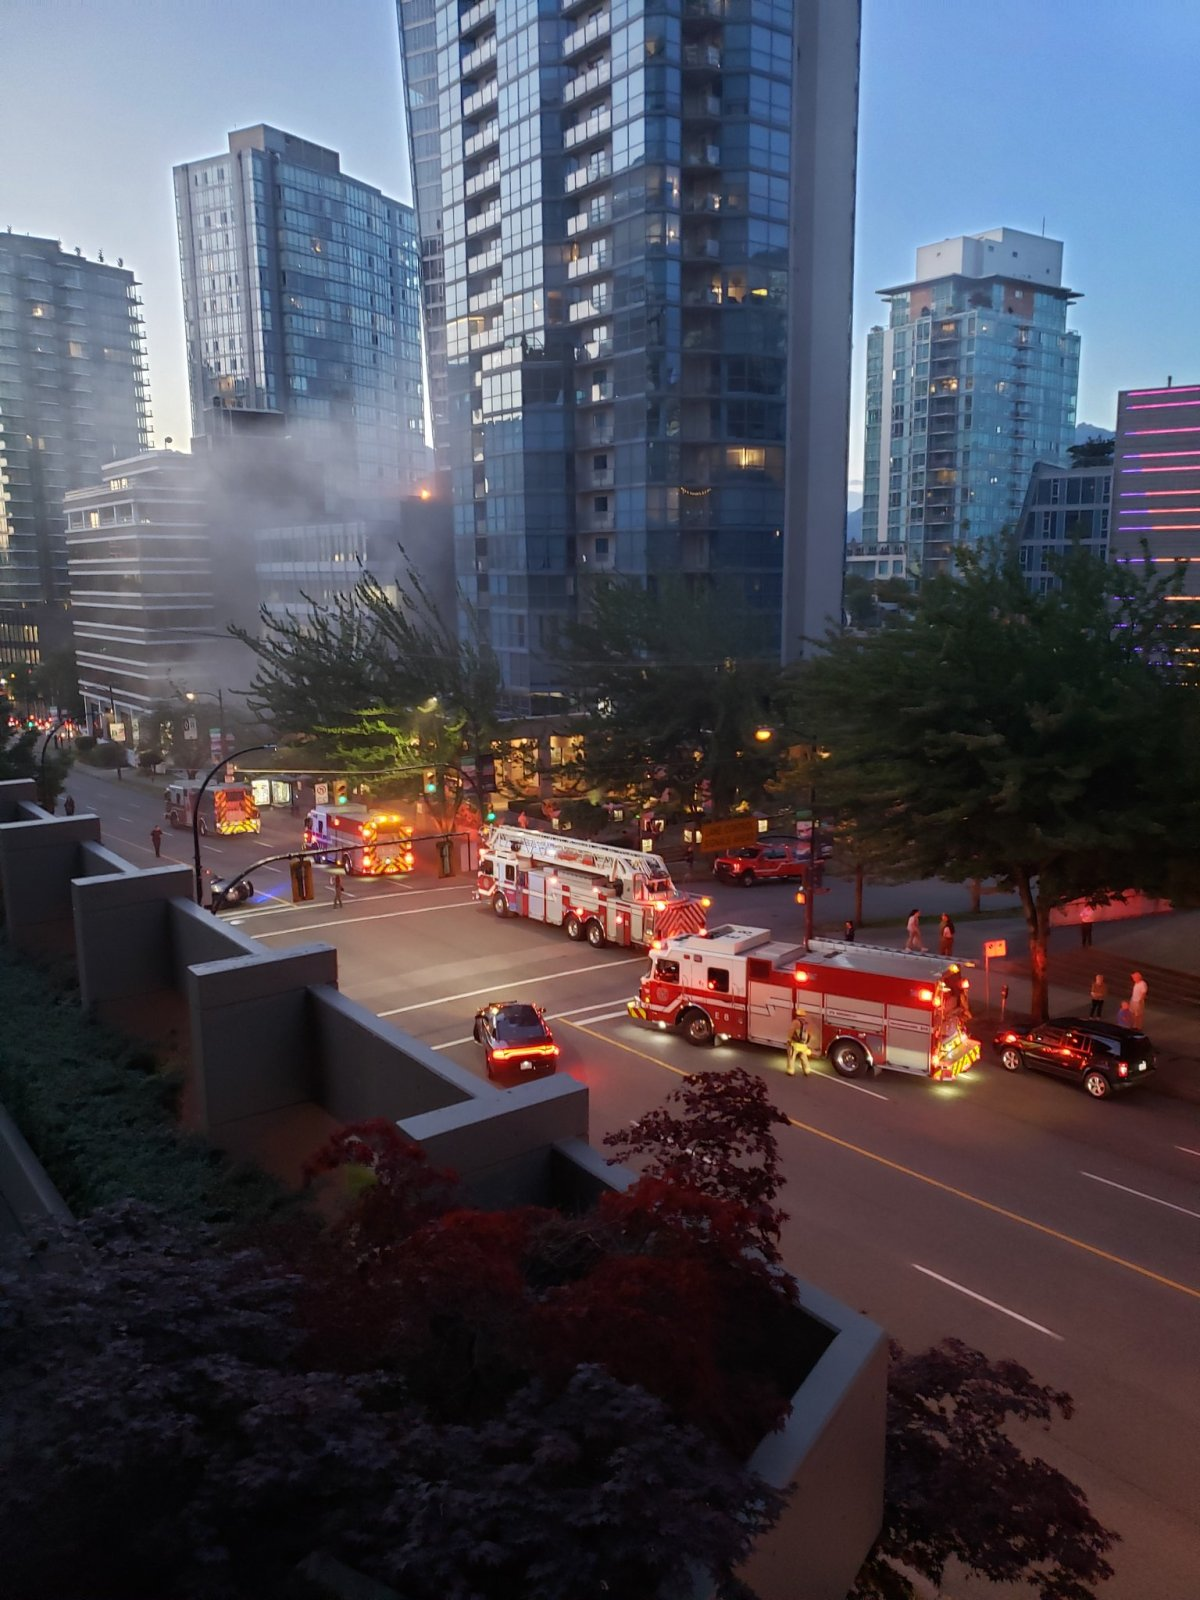 Vancouver fire crews had to make their way carefully through thick smoke to determine the source somewhere in the lower level of a seven storey commercial building in Coal Harbour Sunday evening.